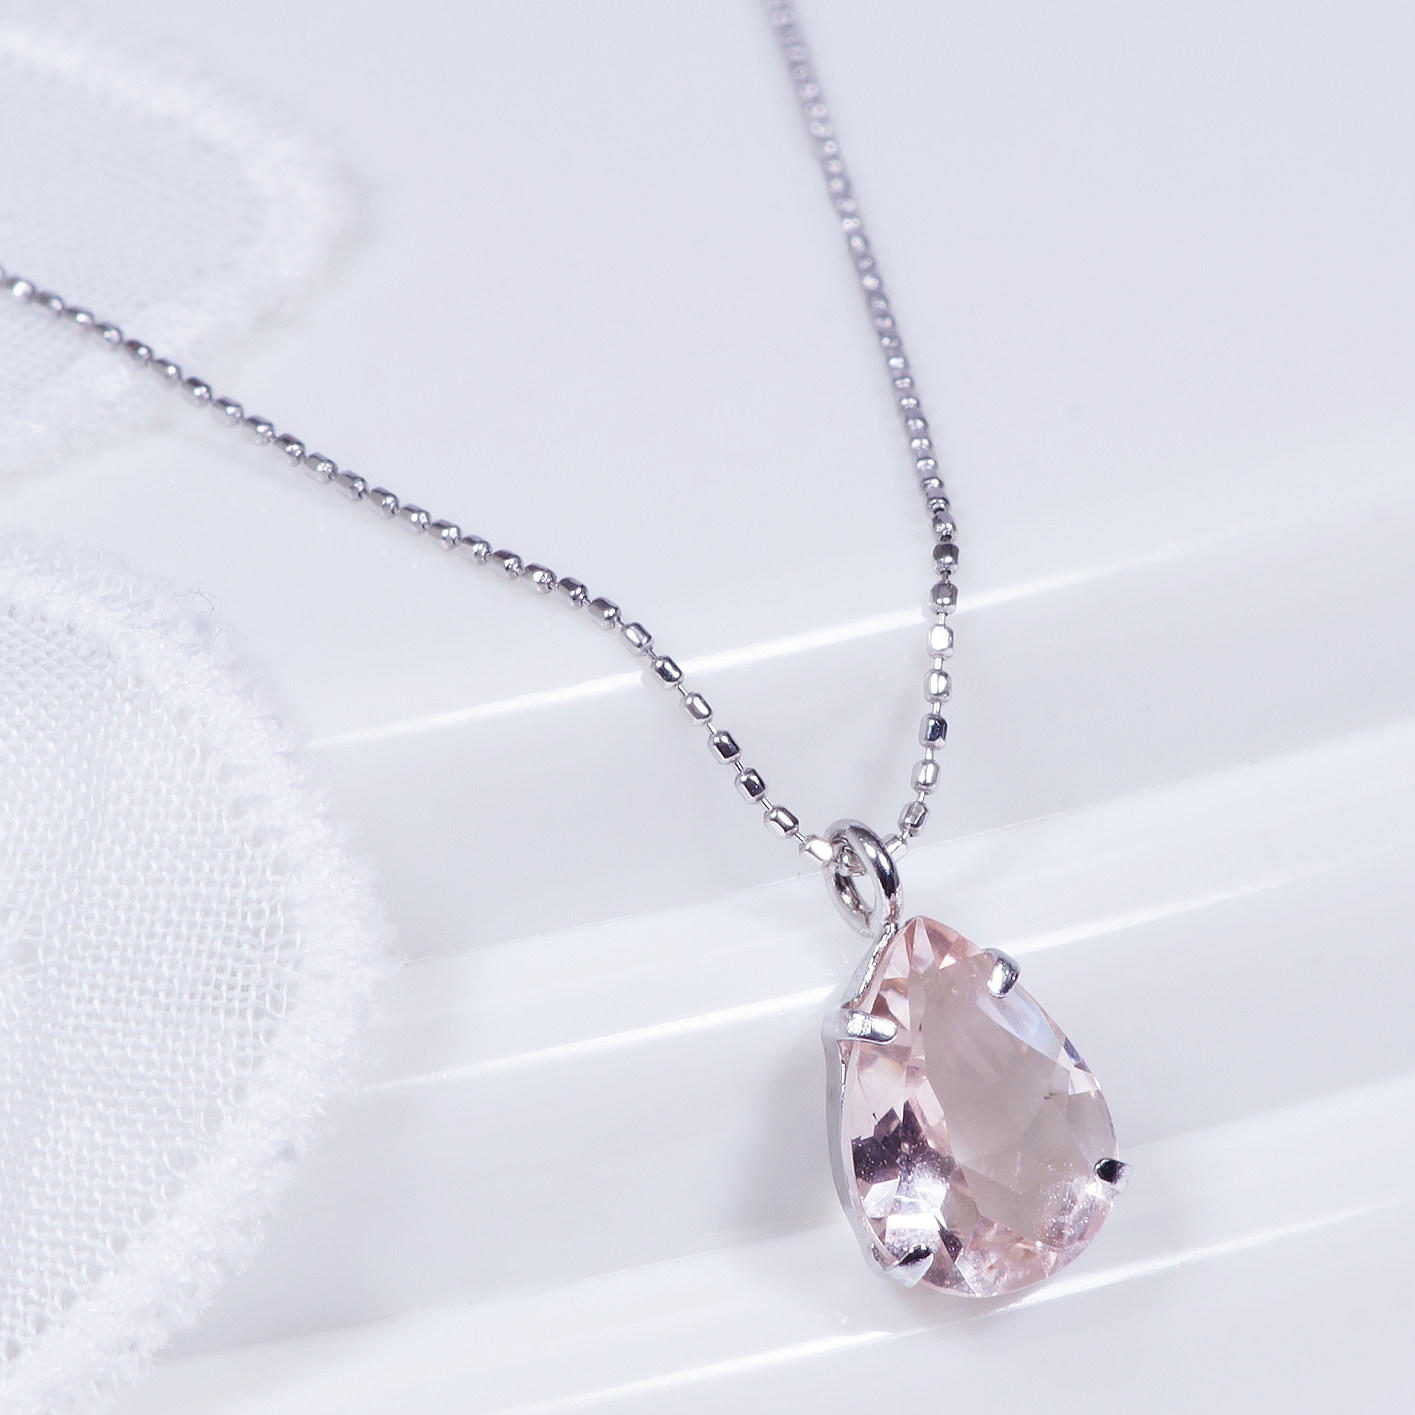 asp special necklace birthday gift p